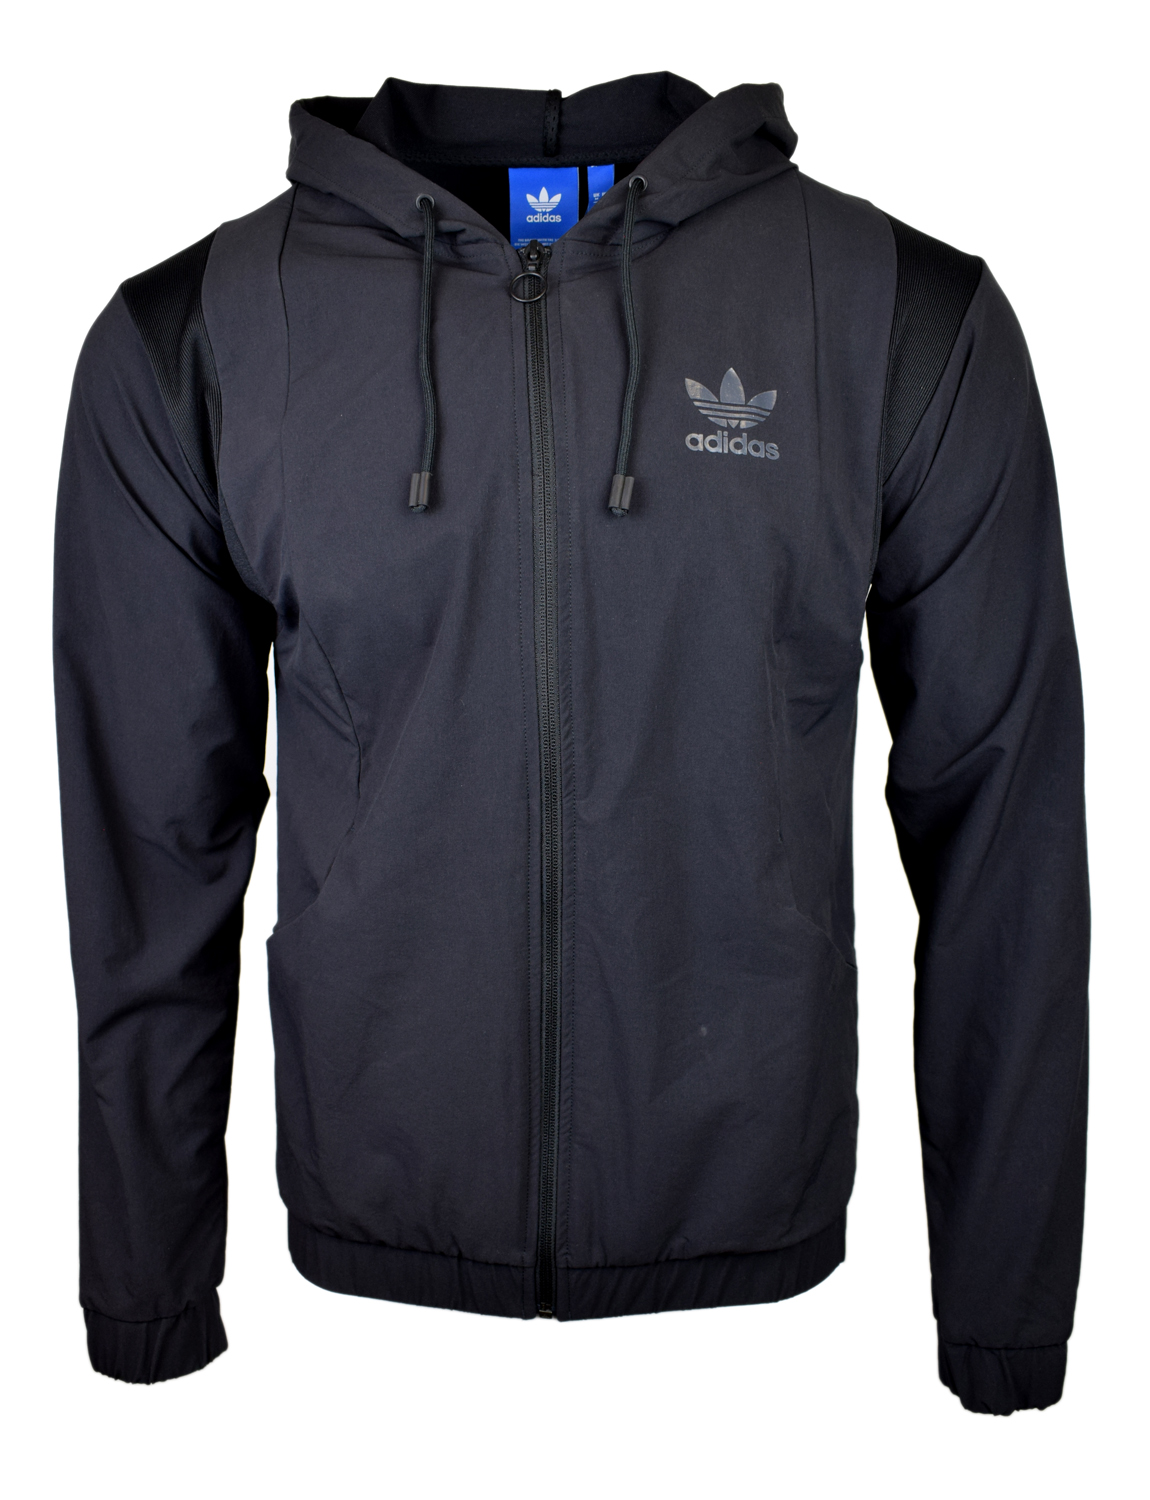 Details about ADIDAS ORIGINALS MENS PARKA UTILITY JACKET SUPERSTAR TREFOIL NAVY S AY9136